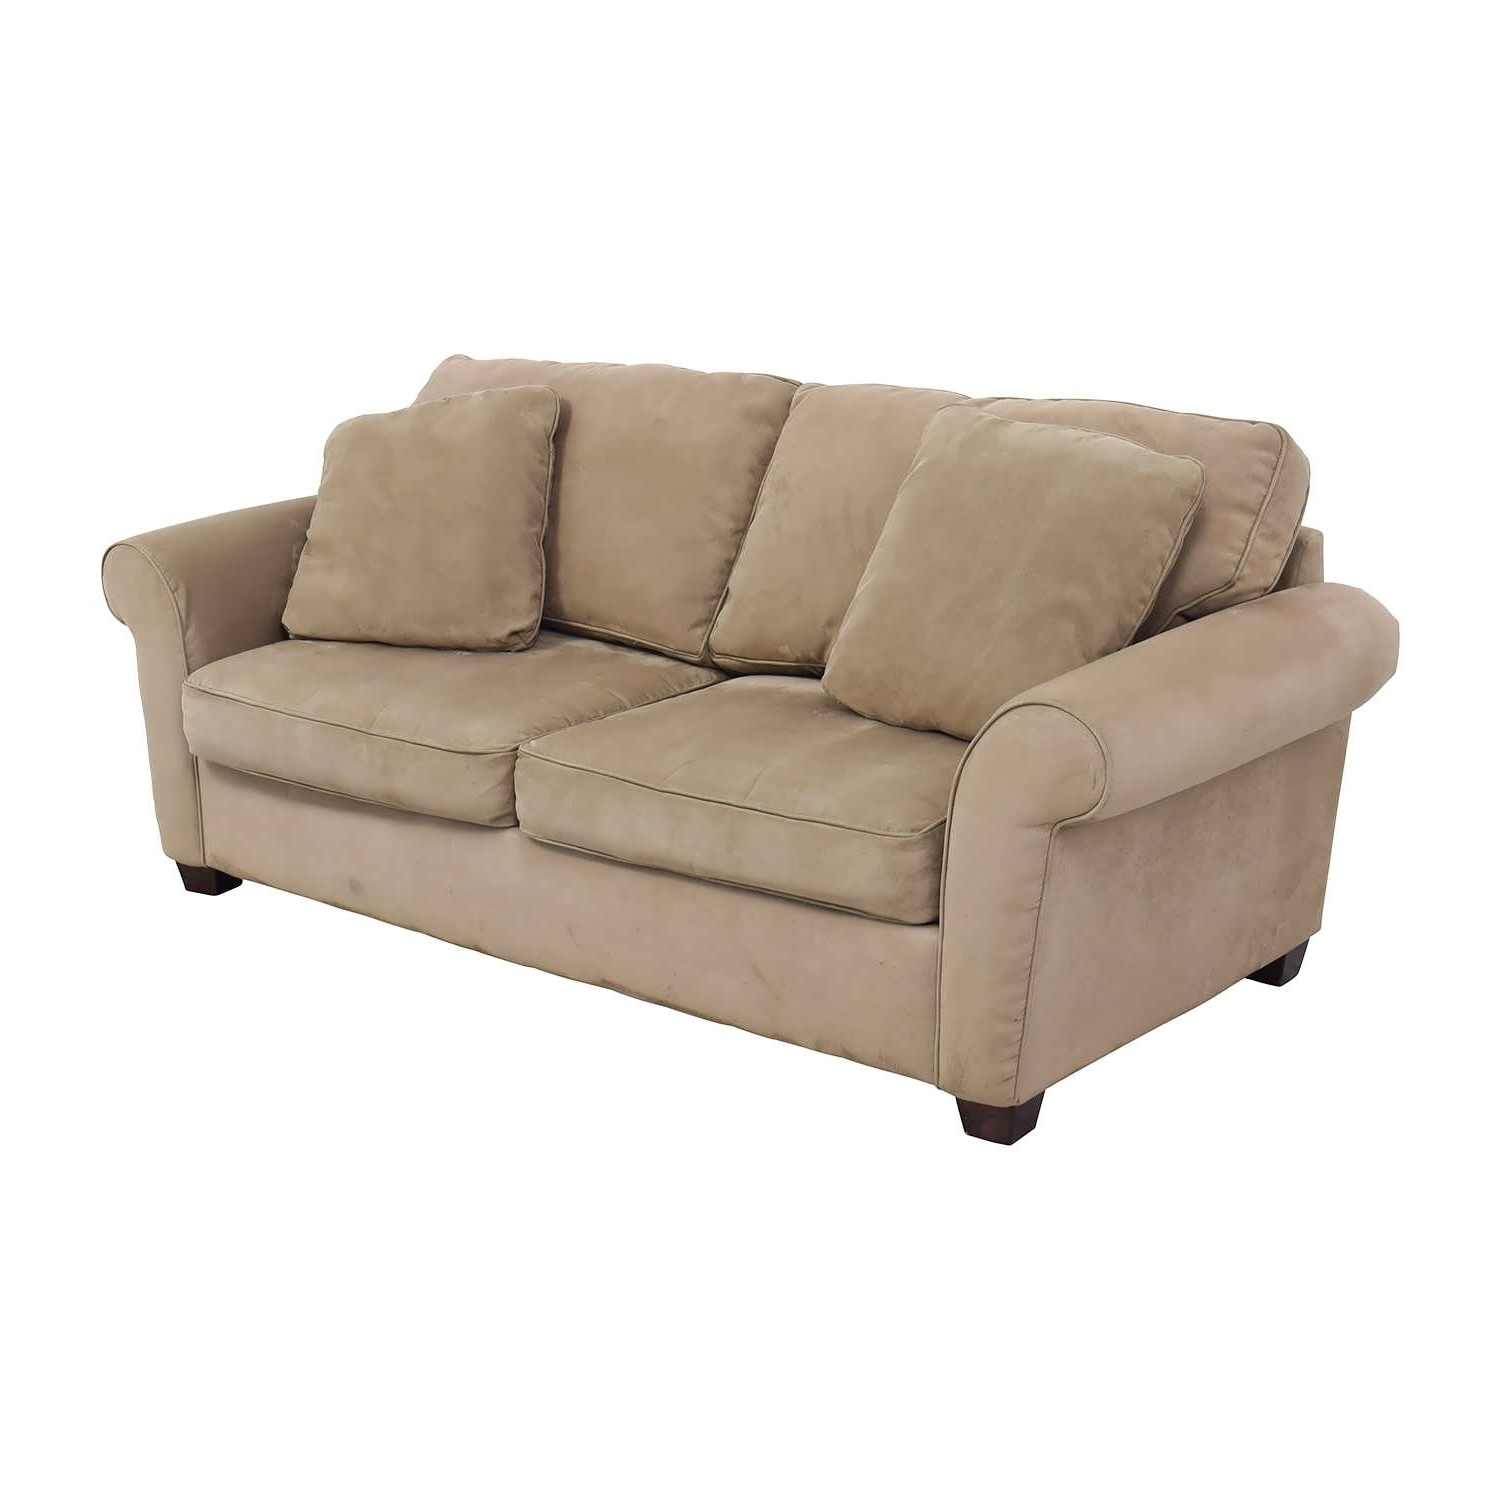 Preferred Sofa : Big Leather Couch Large Sectional Couch Long Sectional For Large Chaises (View 12 of 15)